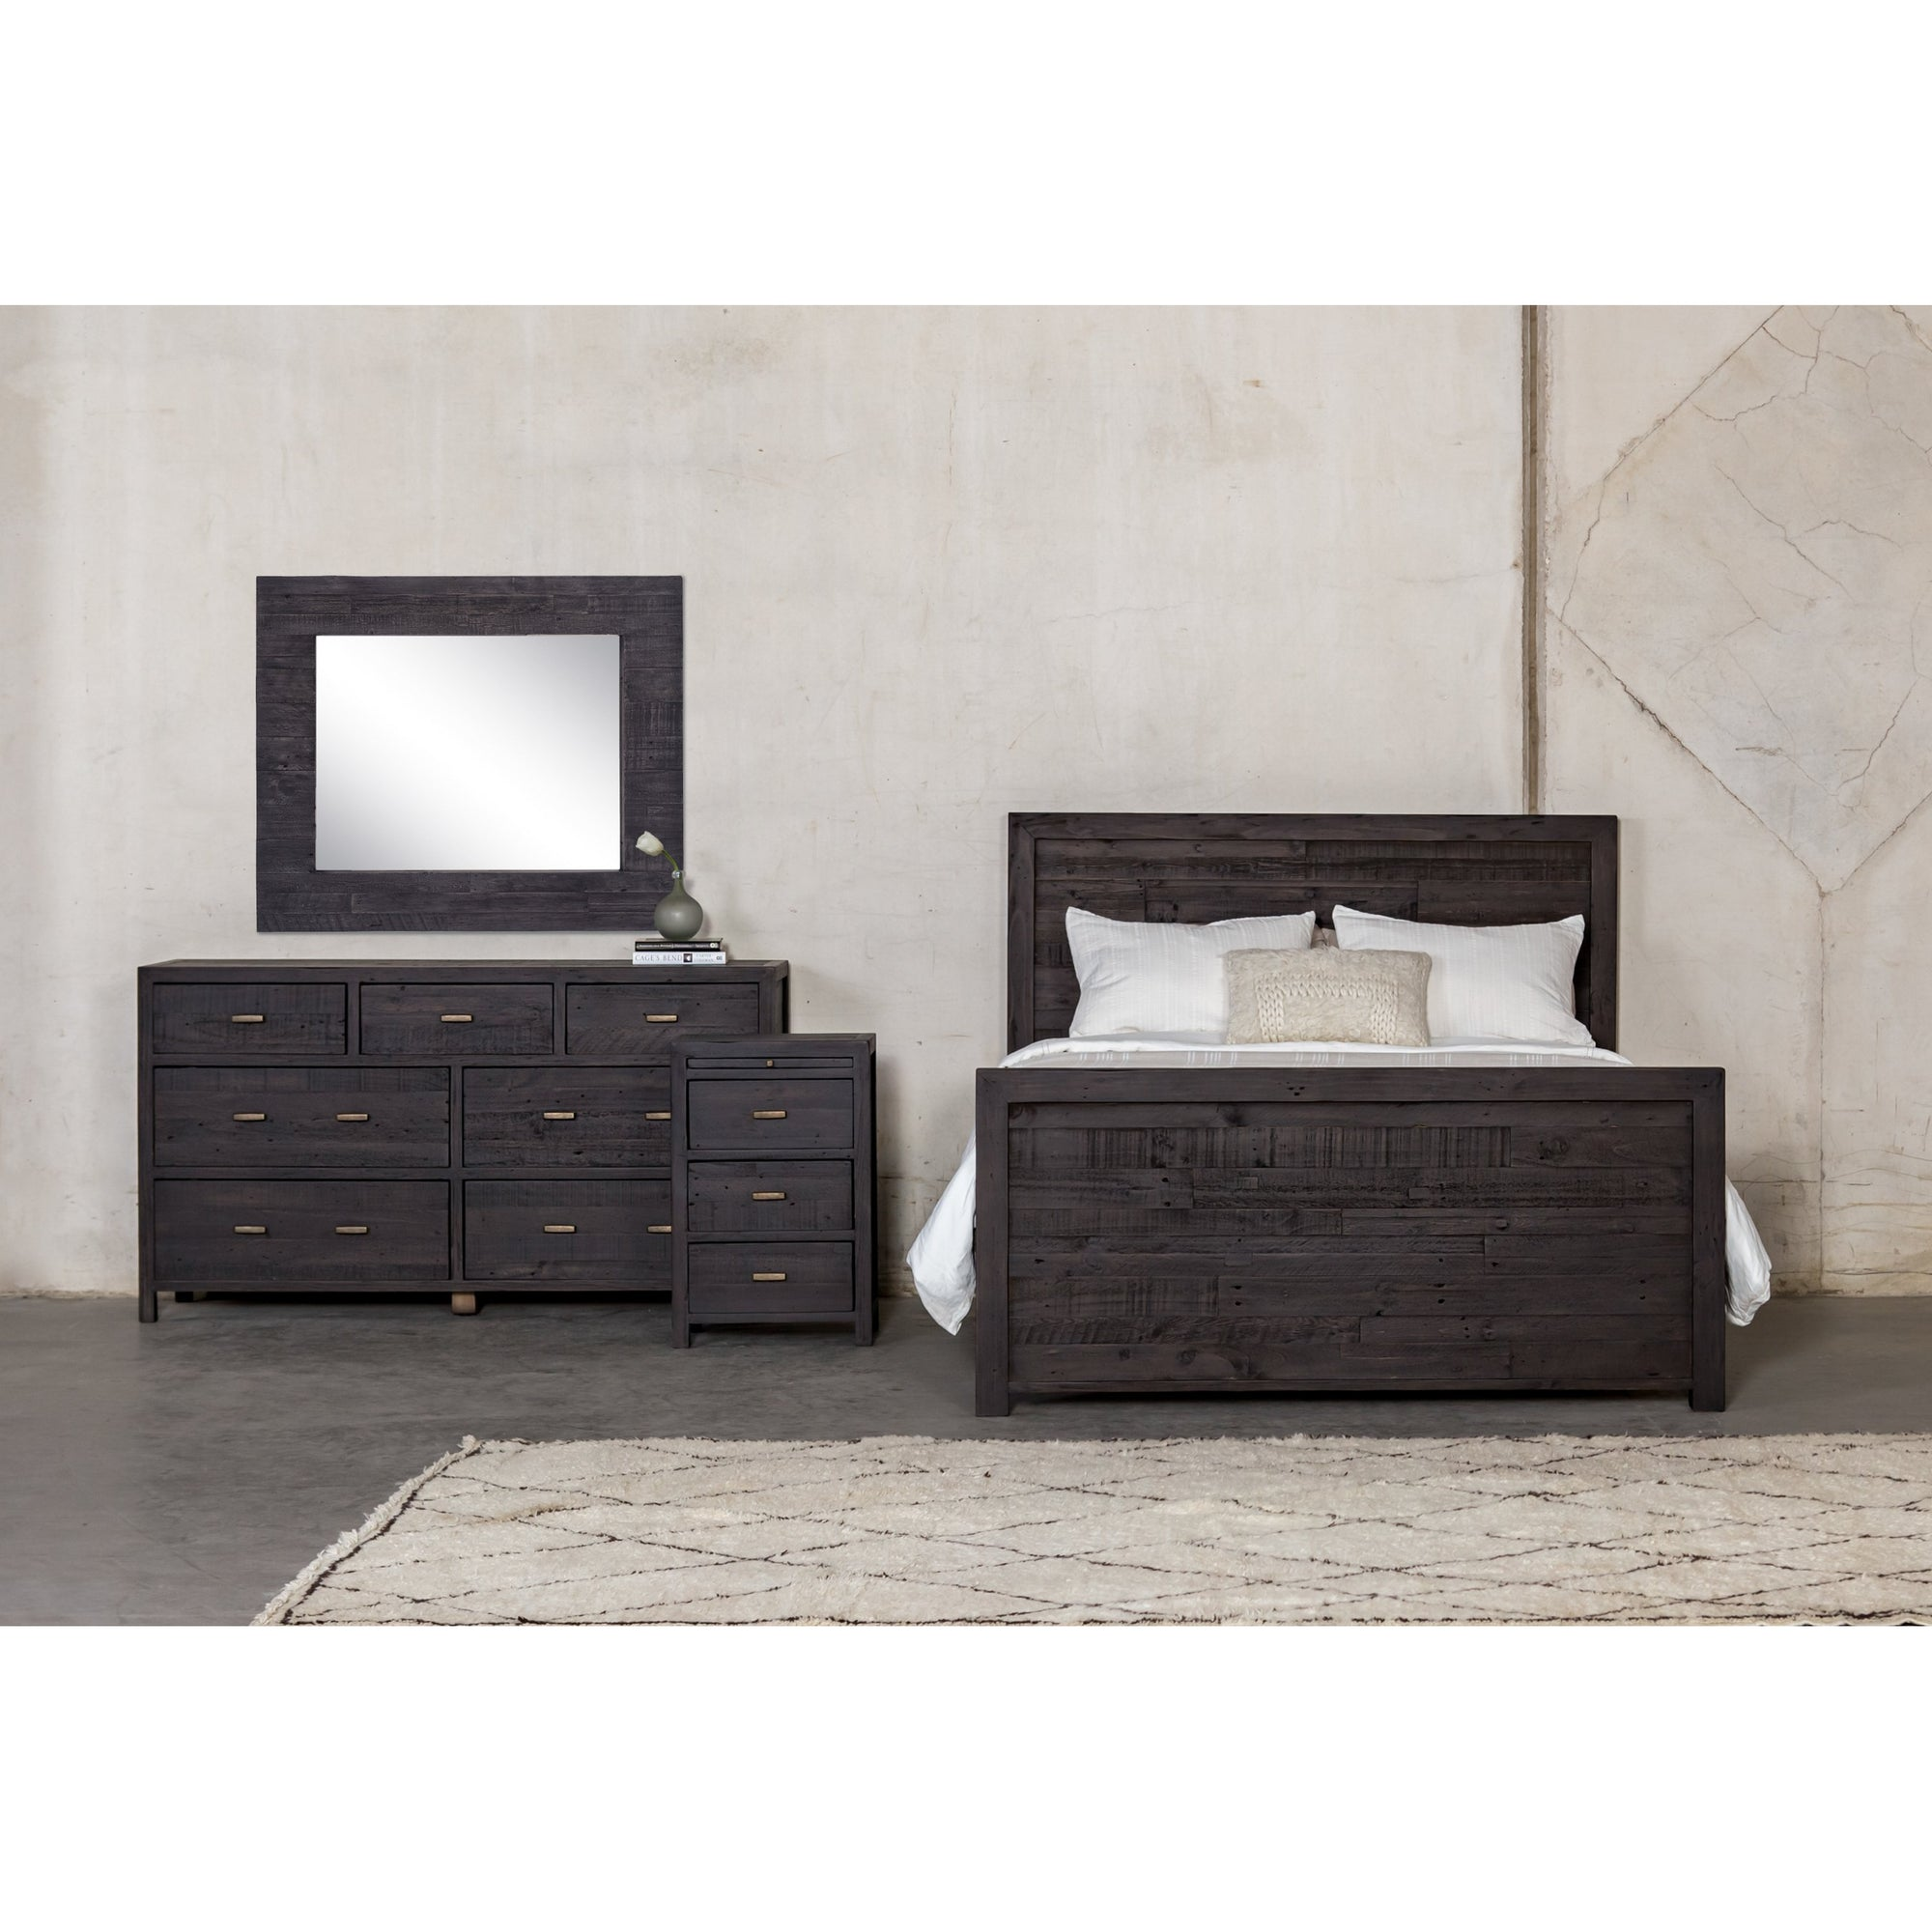 Caminito 7 Drawer Dresser - Dark Carbon